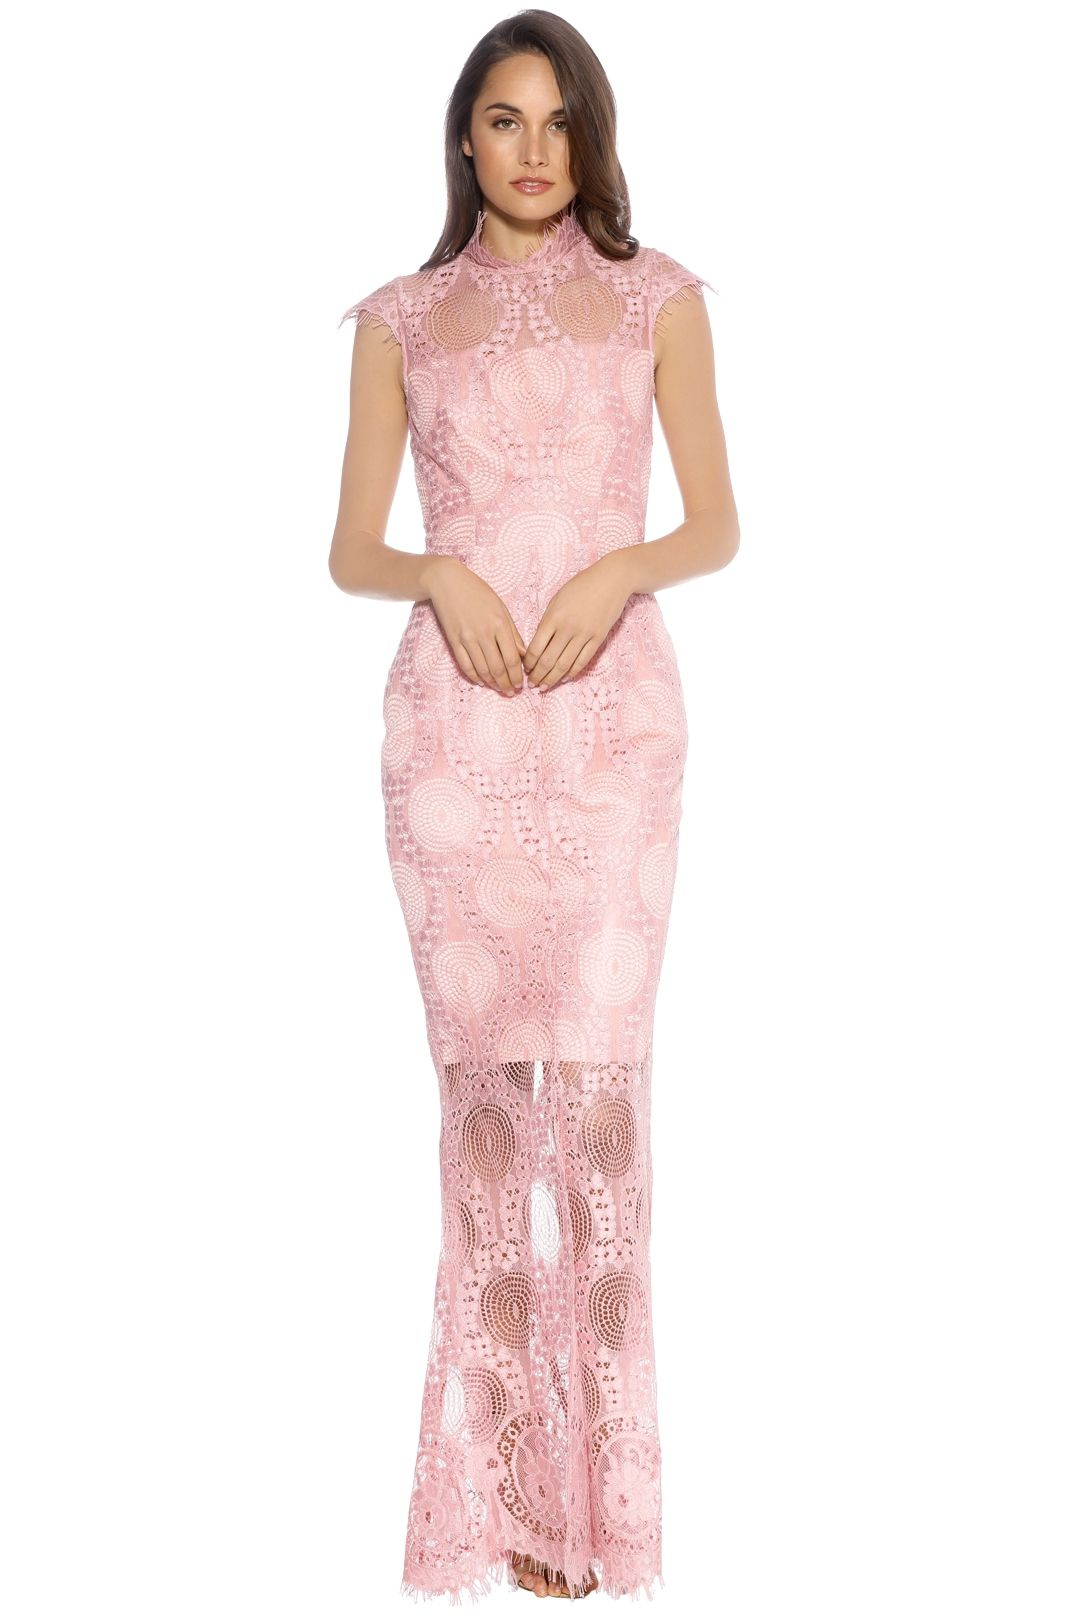 Grace & Hart - Queen Bee Gown - Blush Pink - Front